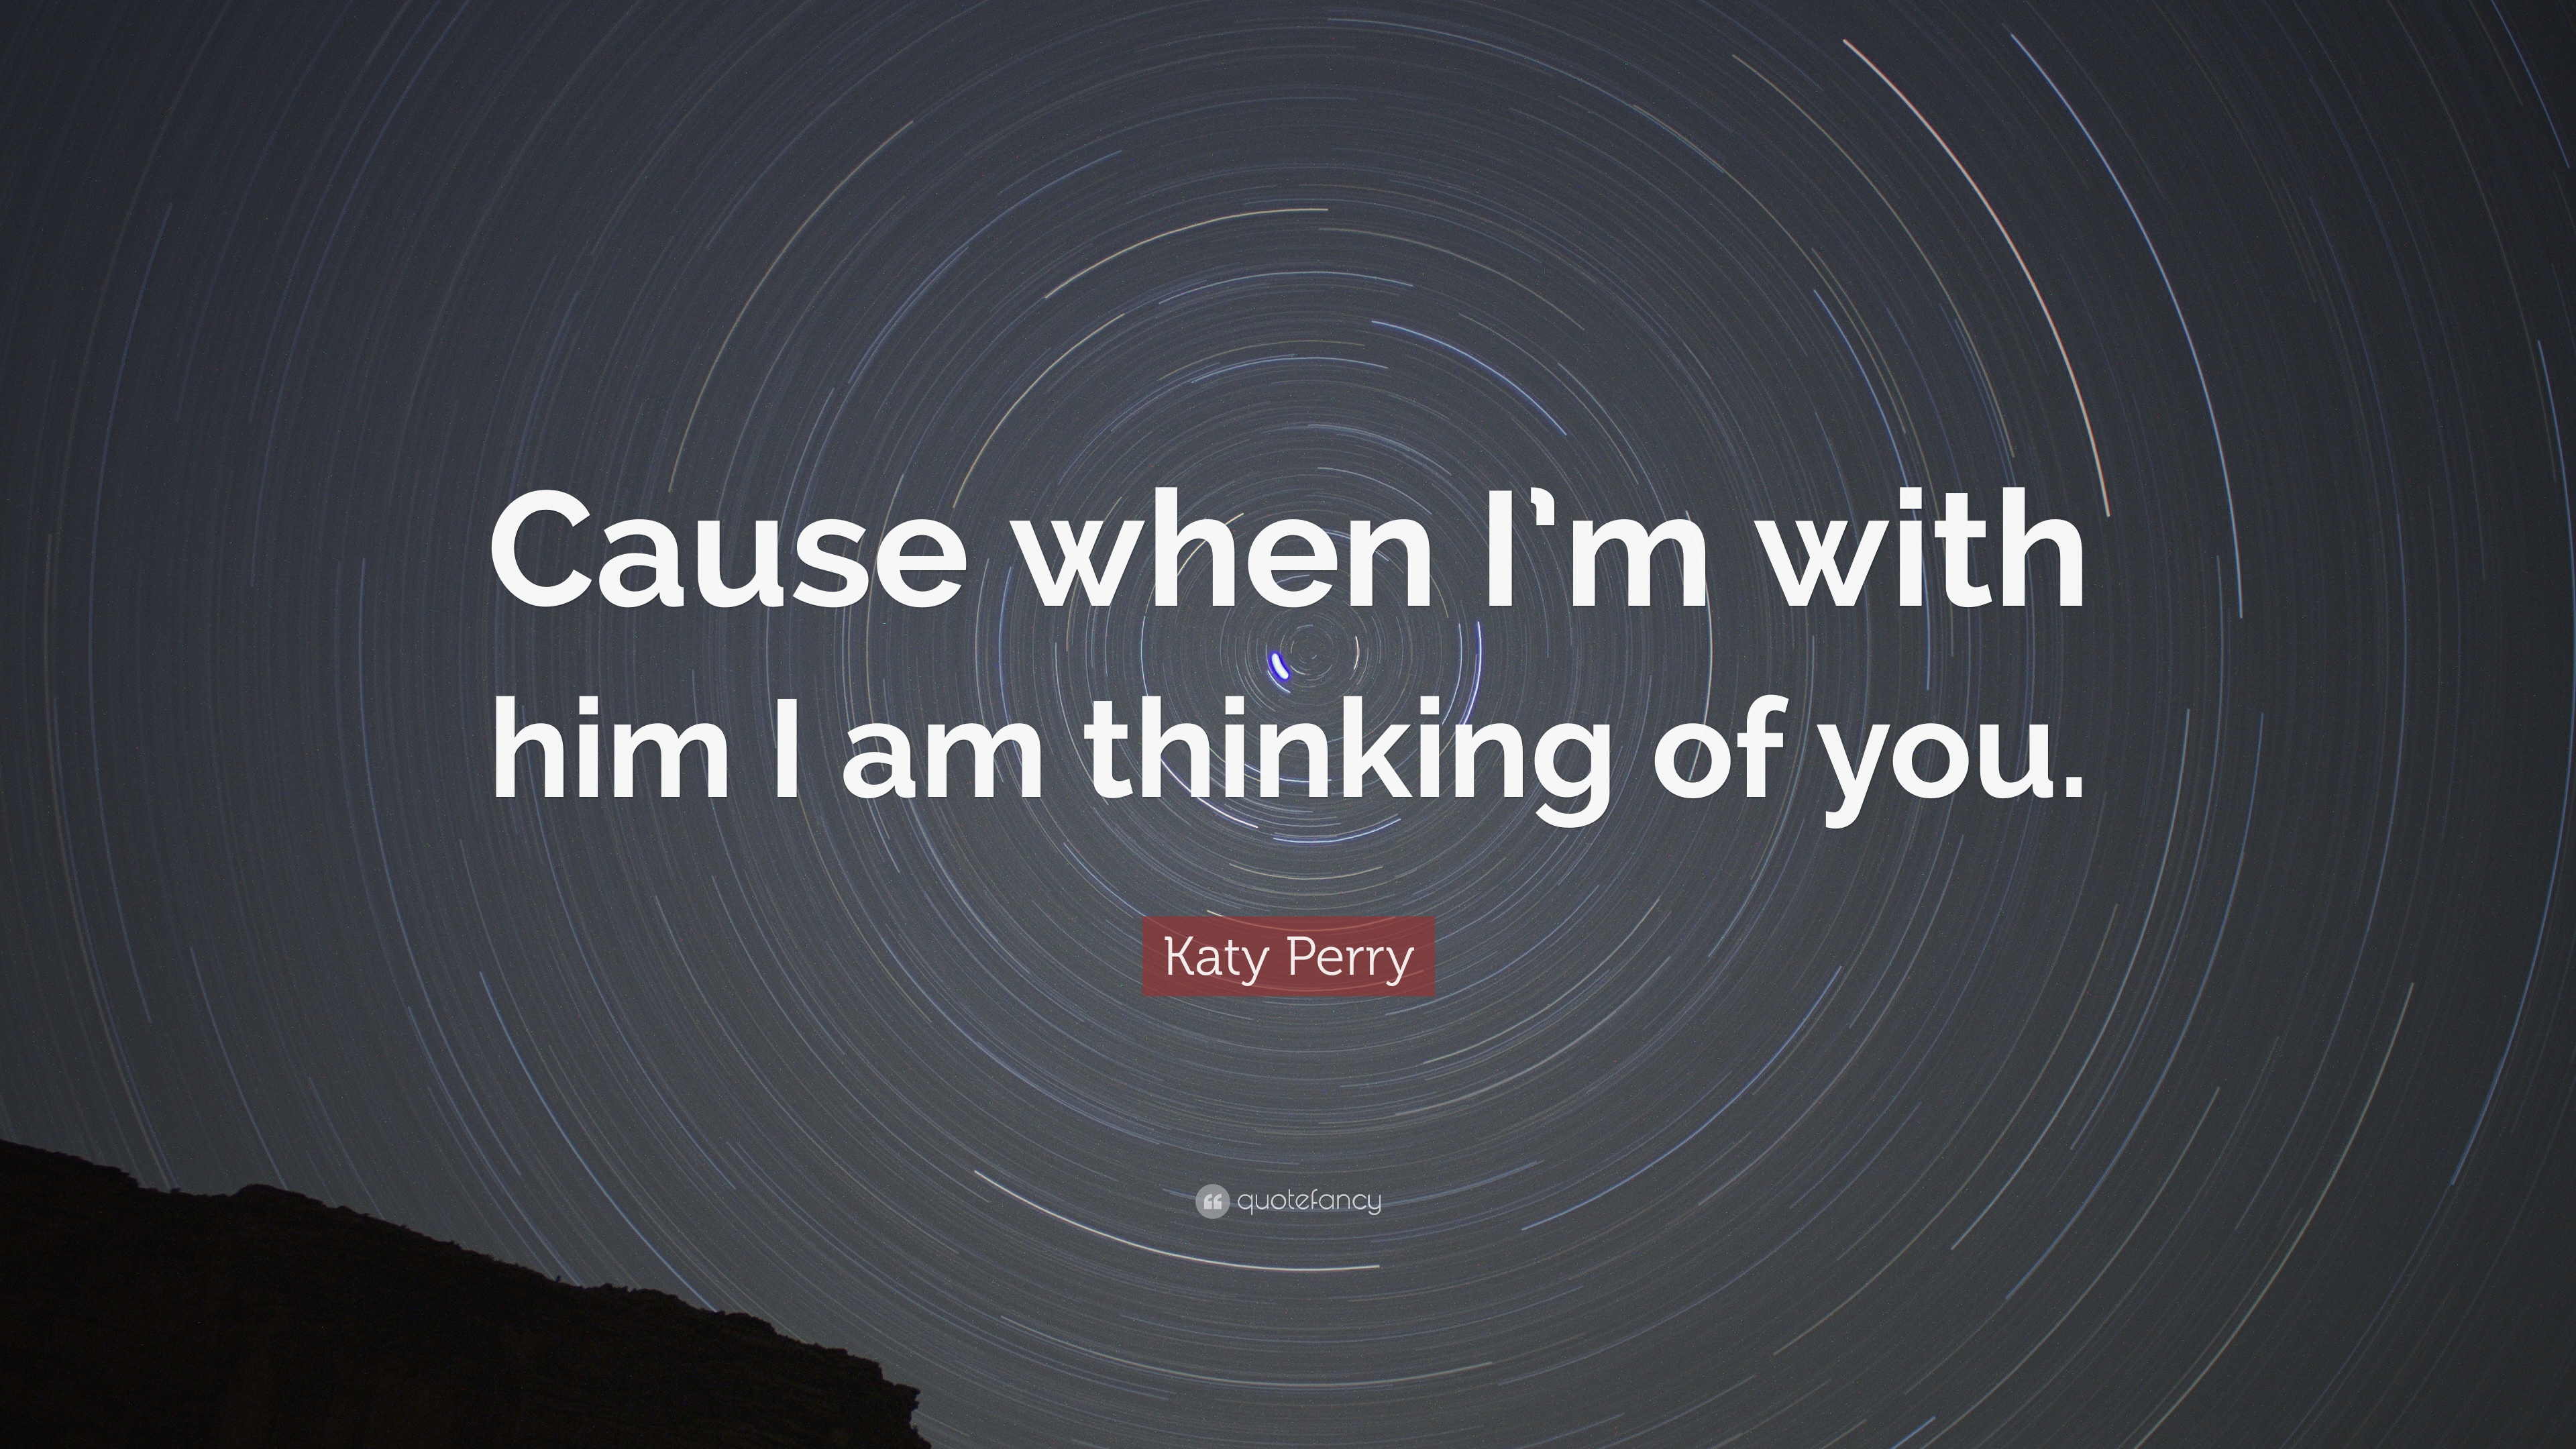 Katy Perry Quote Cause When Im With Him I Am Thinking Of You